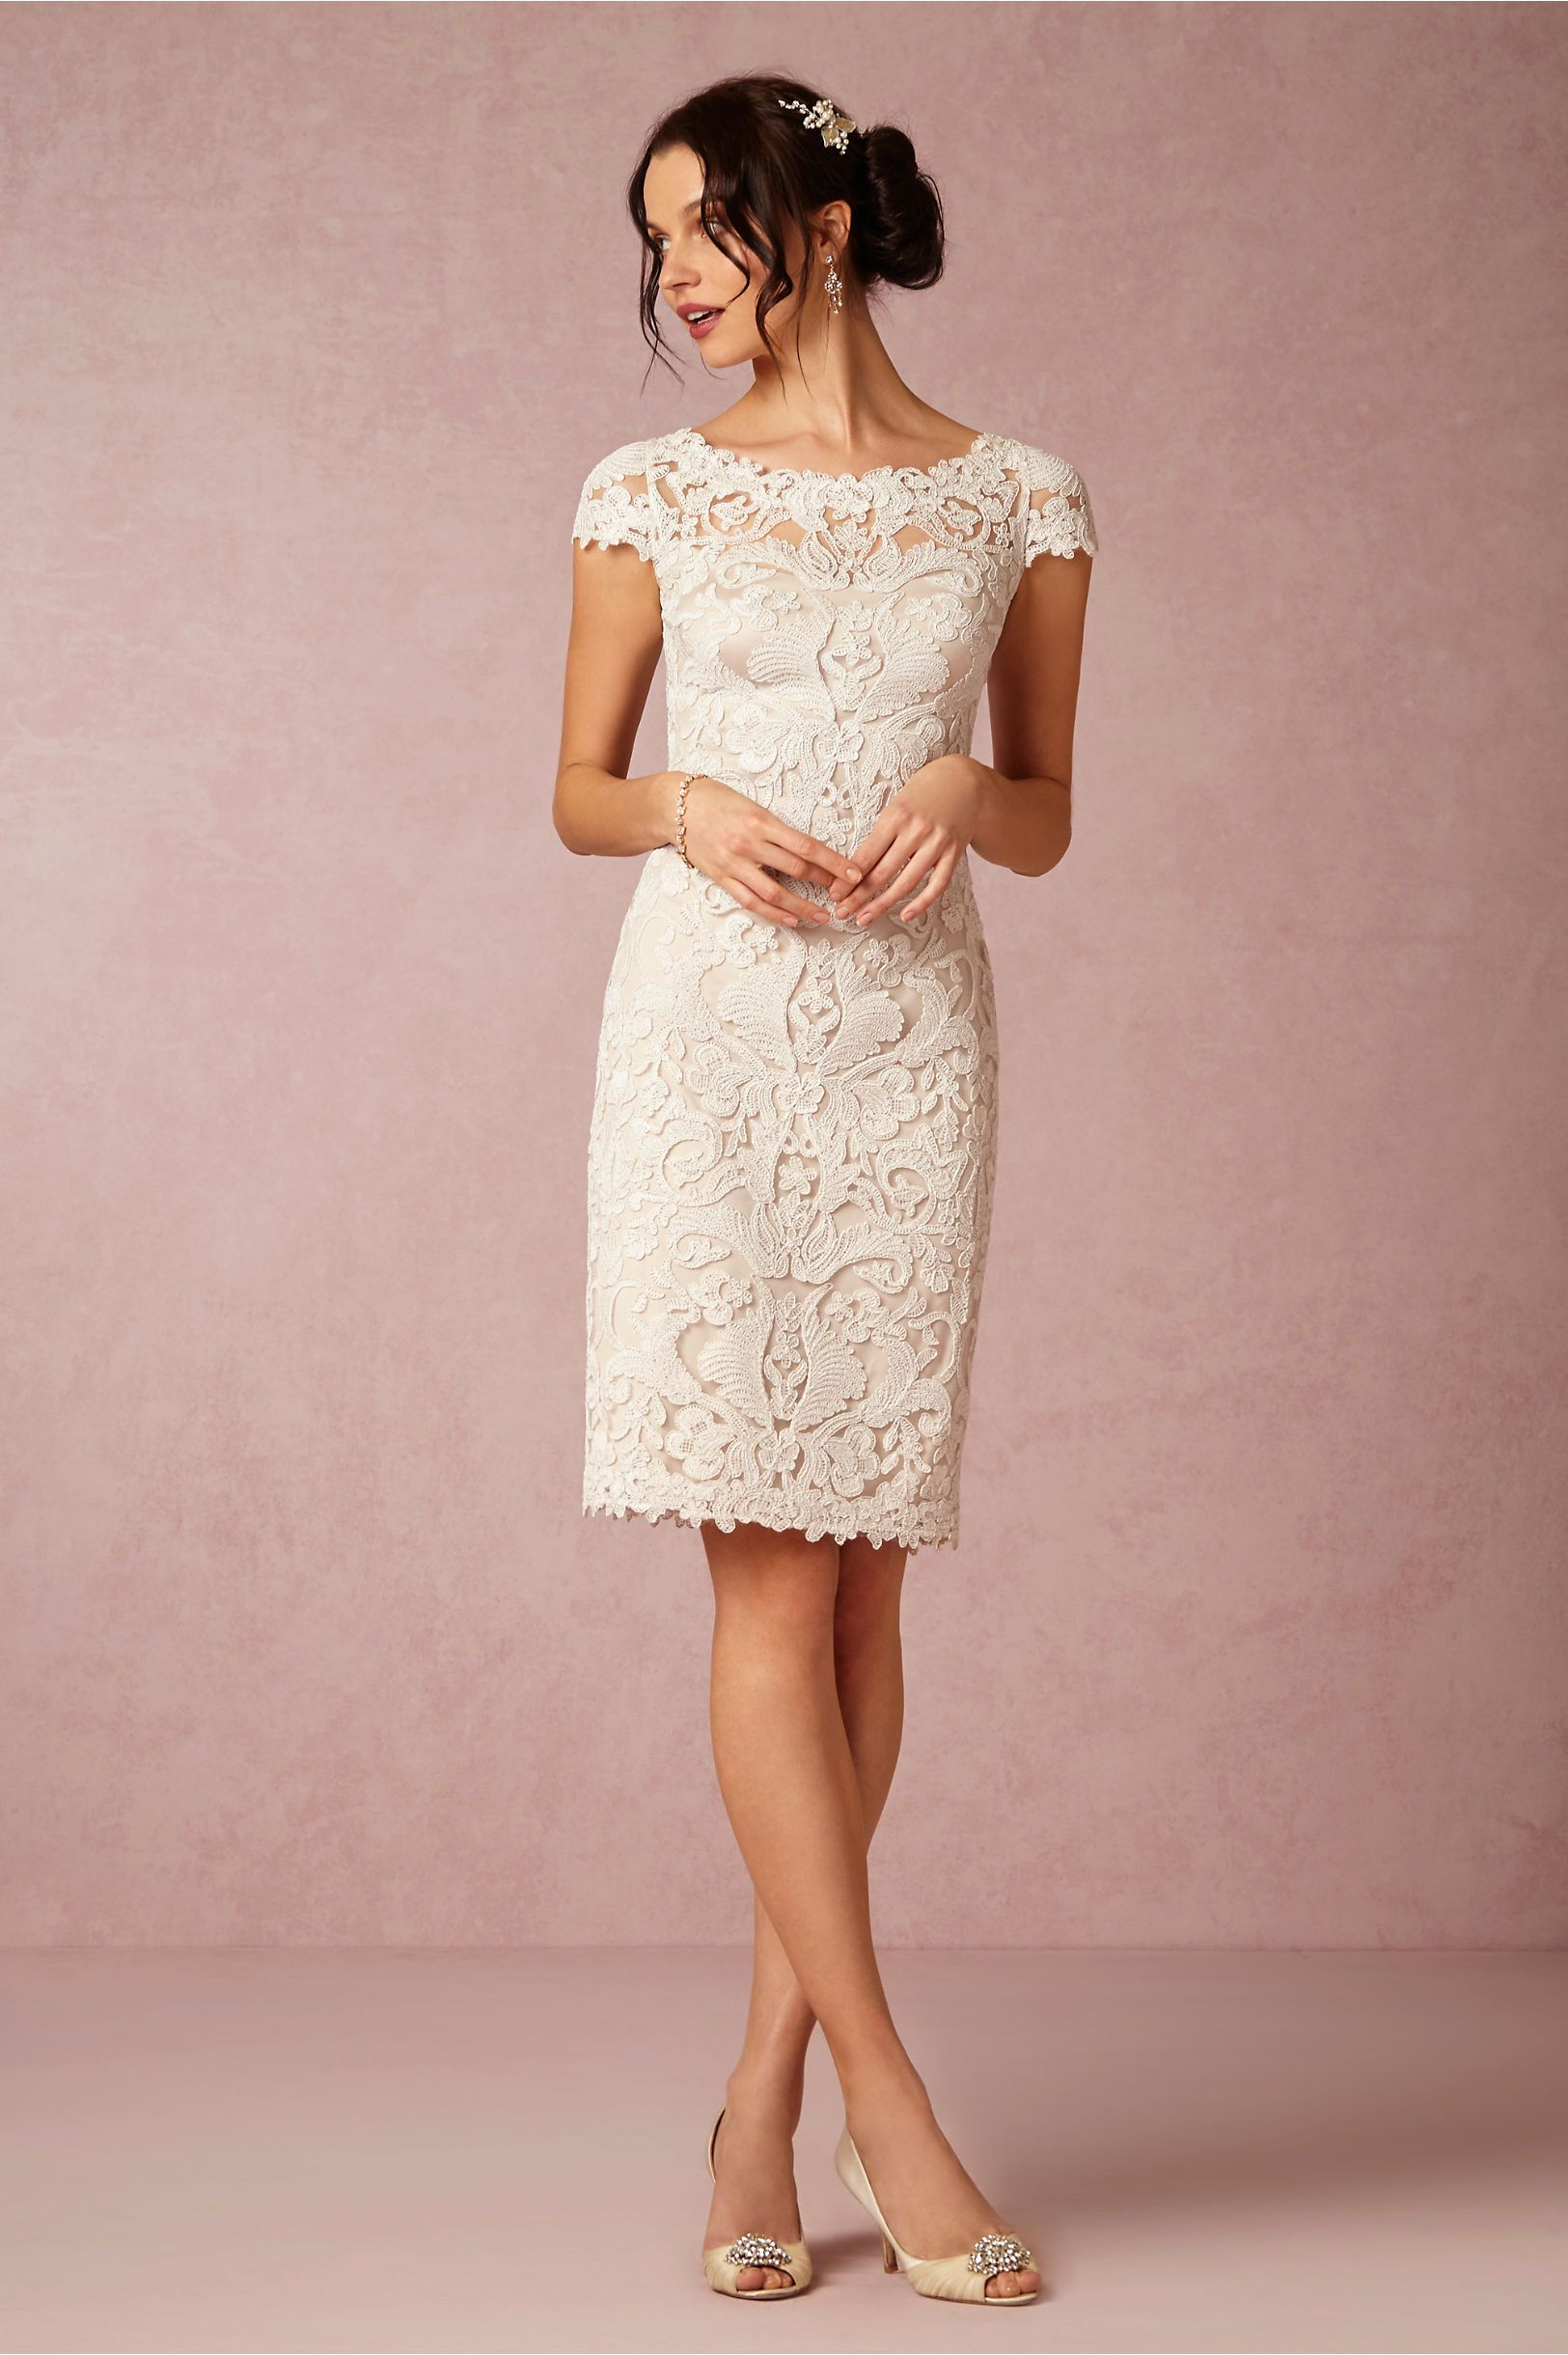 Hadley Dress In New At Bhldn Simple Wedding Dress Short Bride Reception Dresses Lace Dress